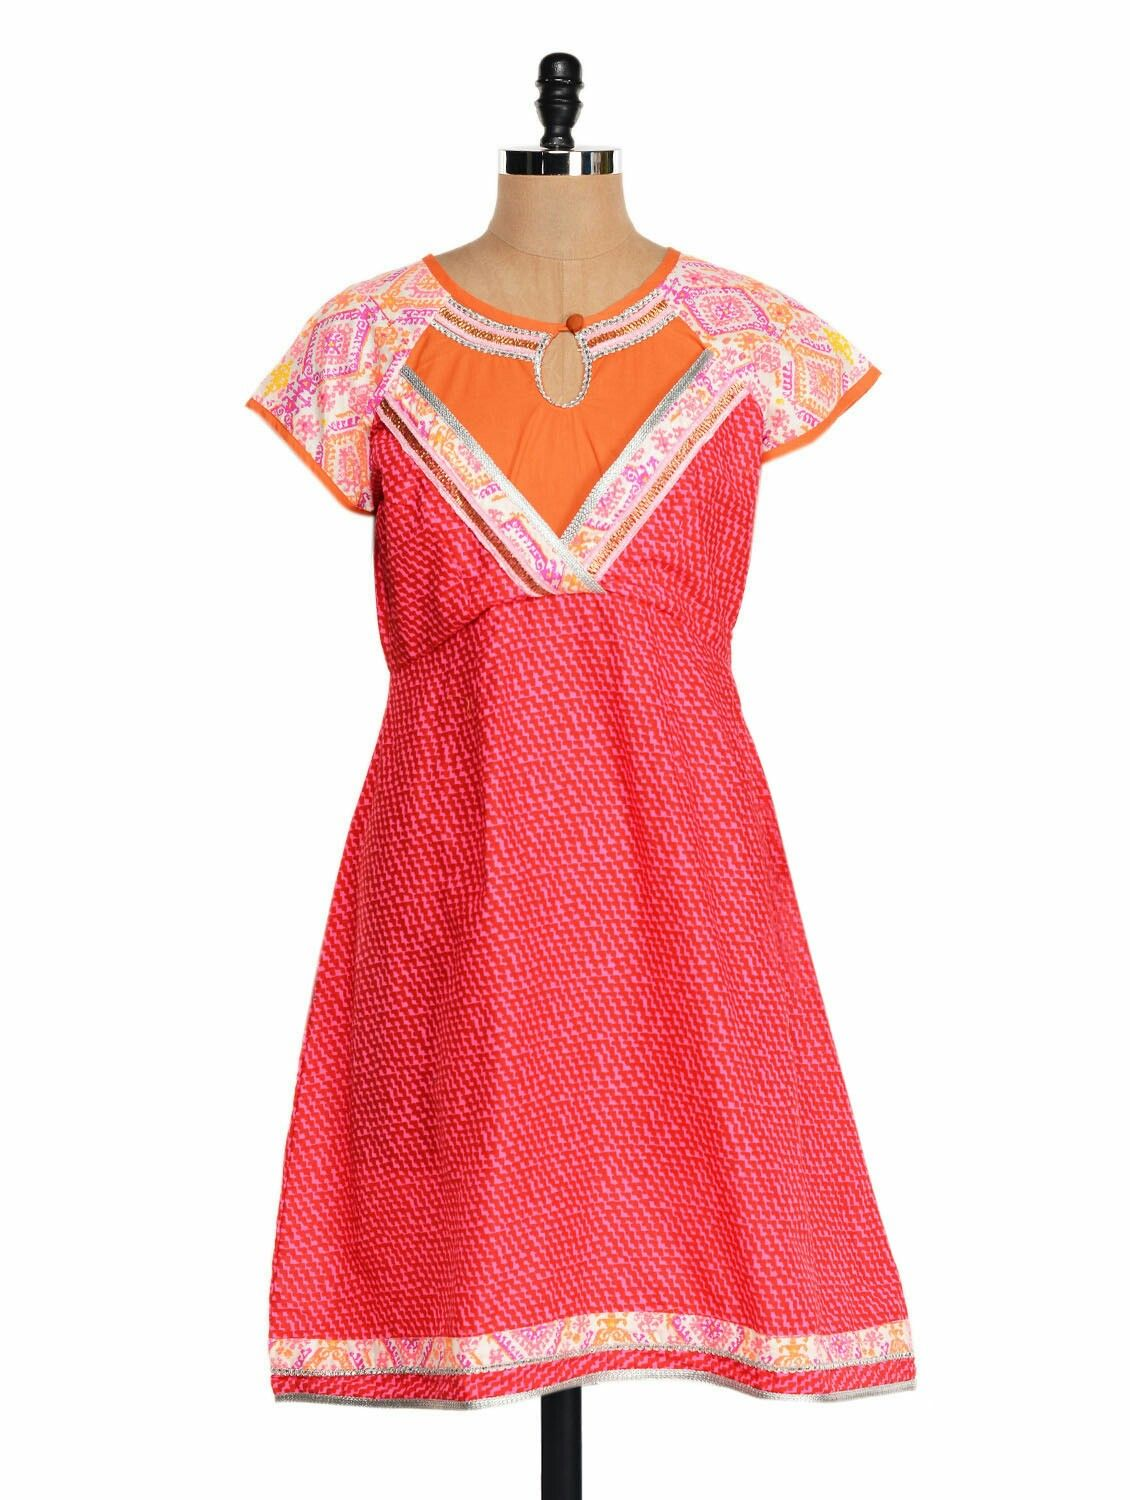 Pin by taylor sain on casual indian dress pinterest indian dresses